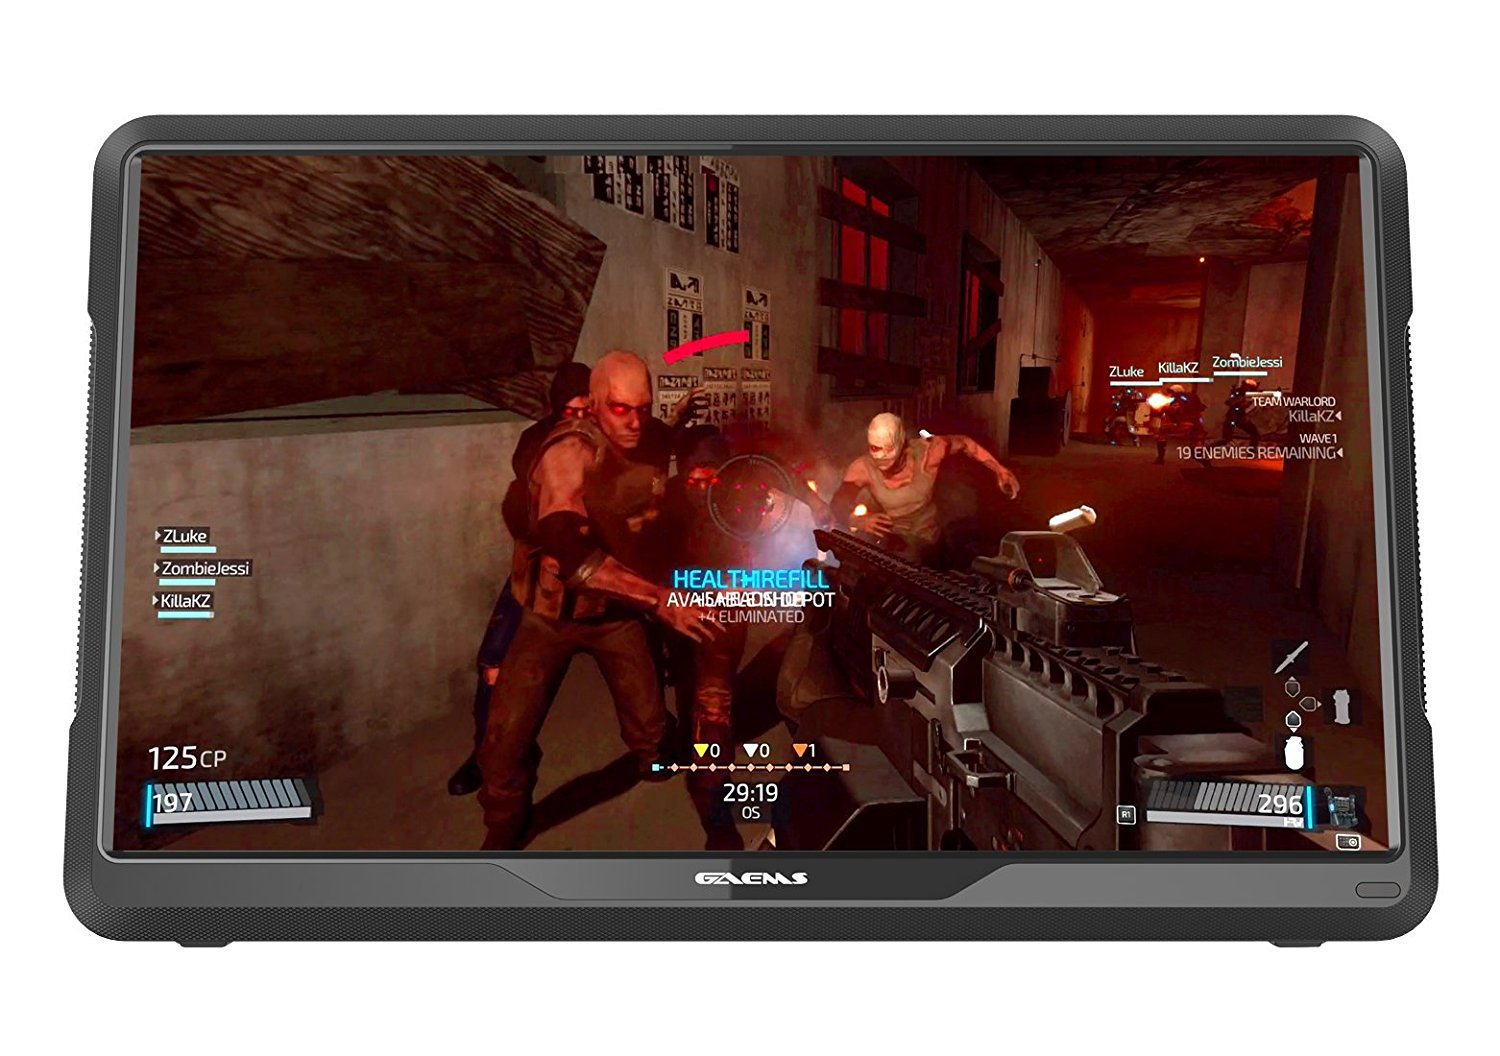 Best Portable Monitors For 2019 - Reviews and Buyers Guide